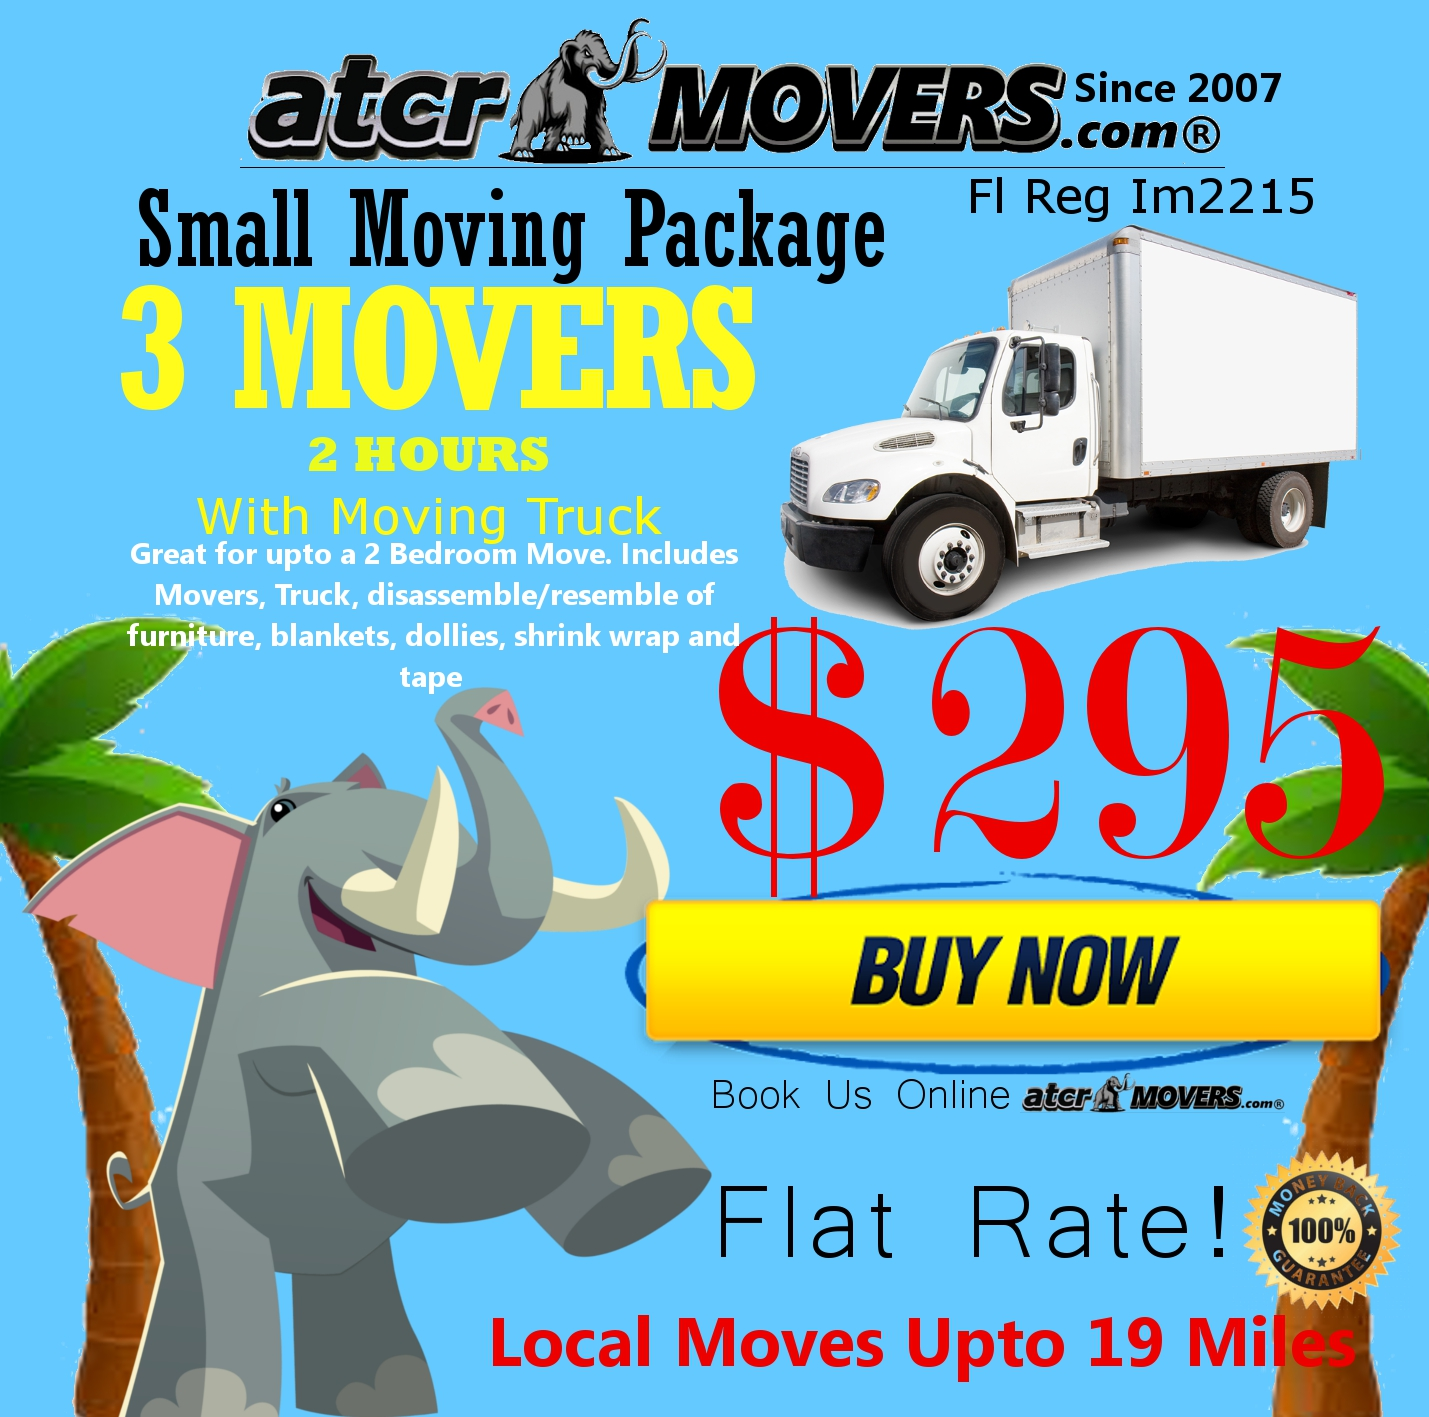 ATCR MOVERS 3 MOVERS 2 HOURS $295